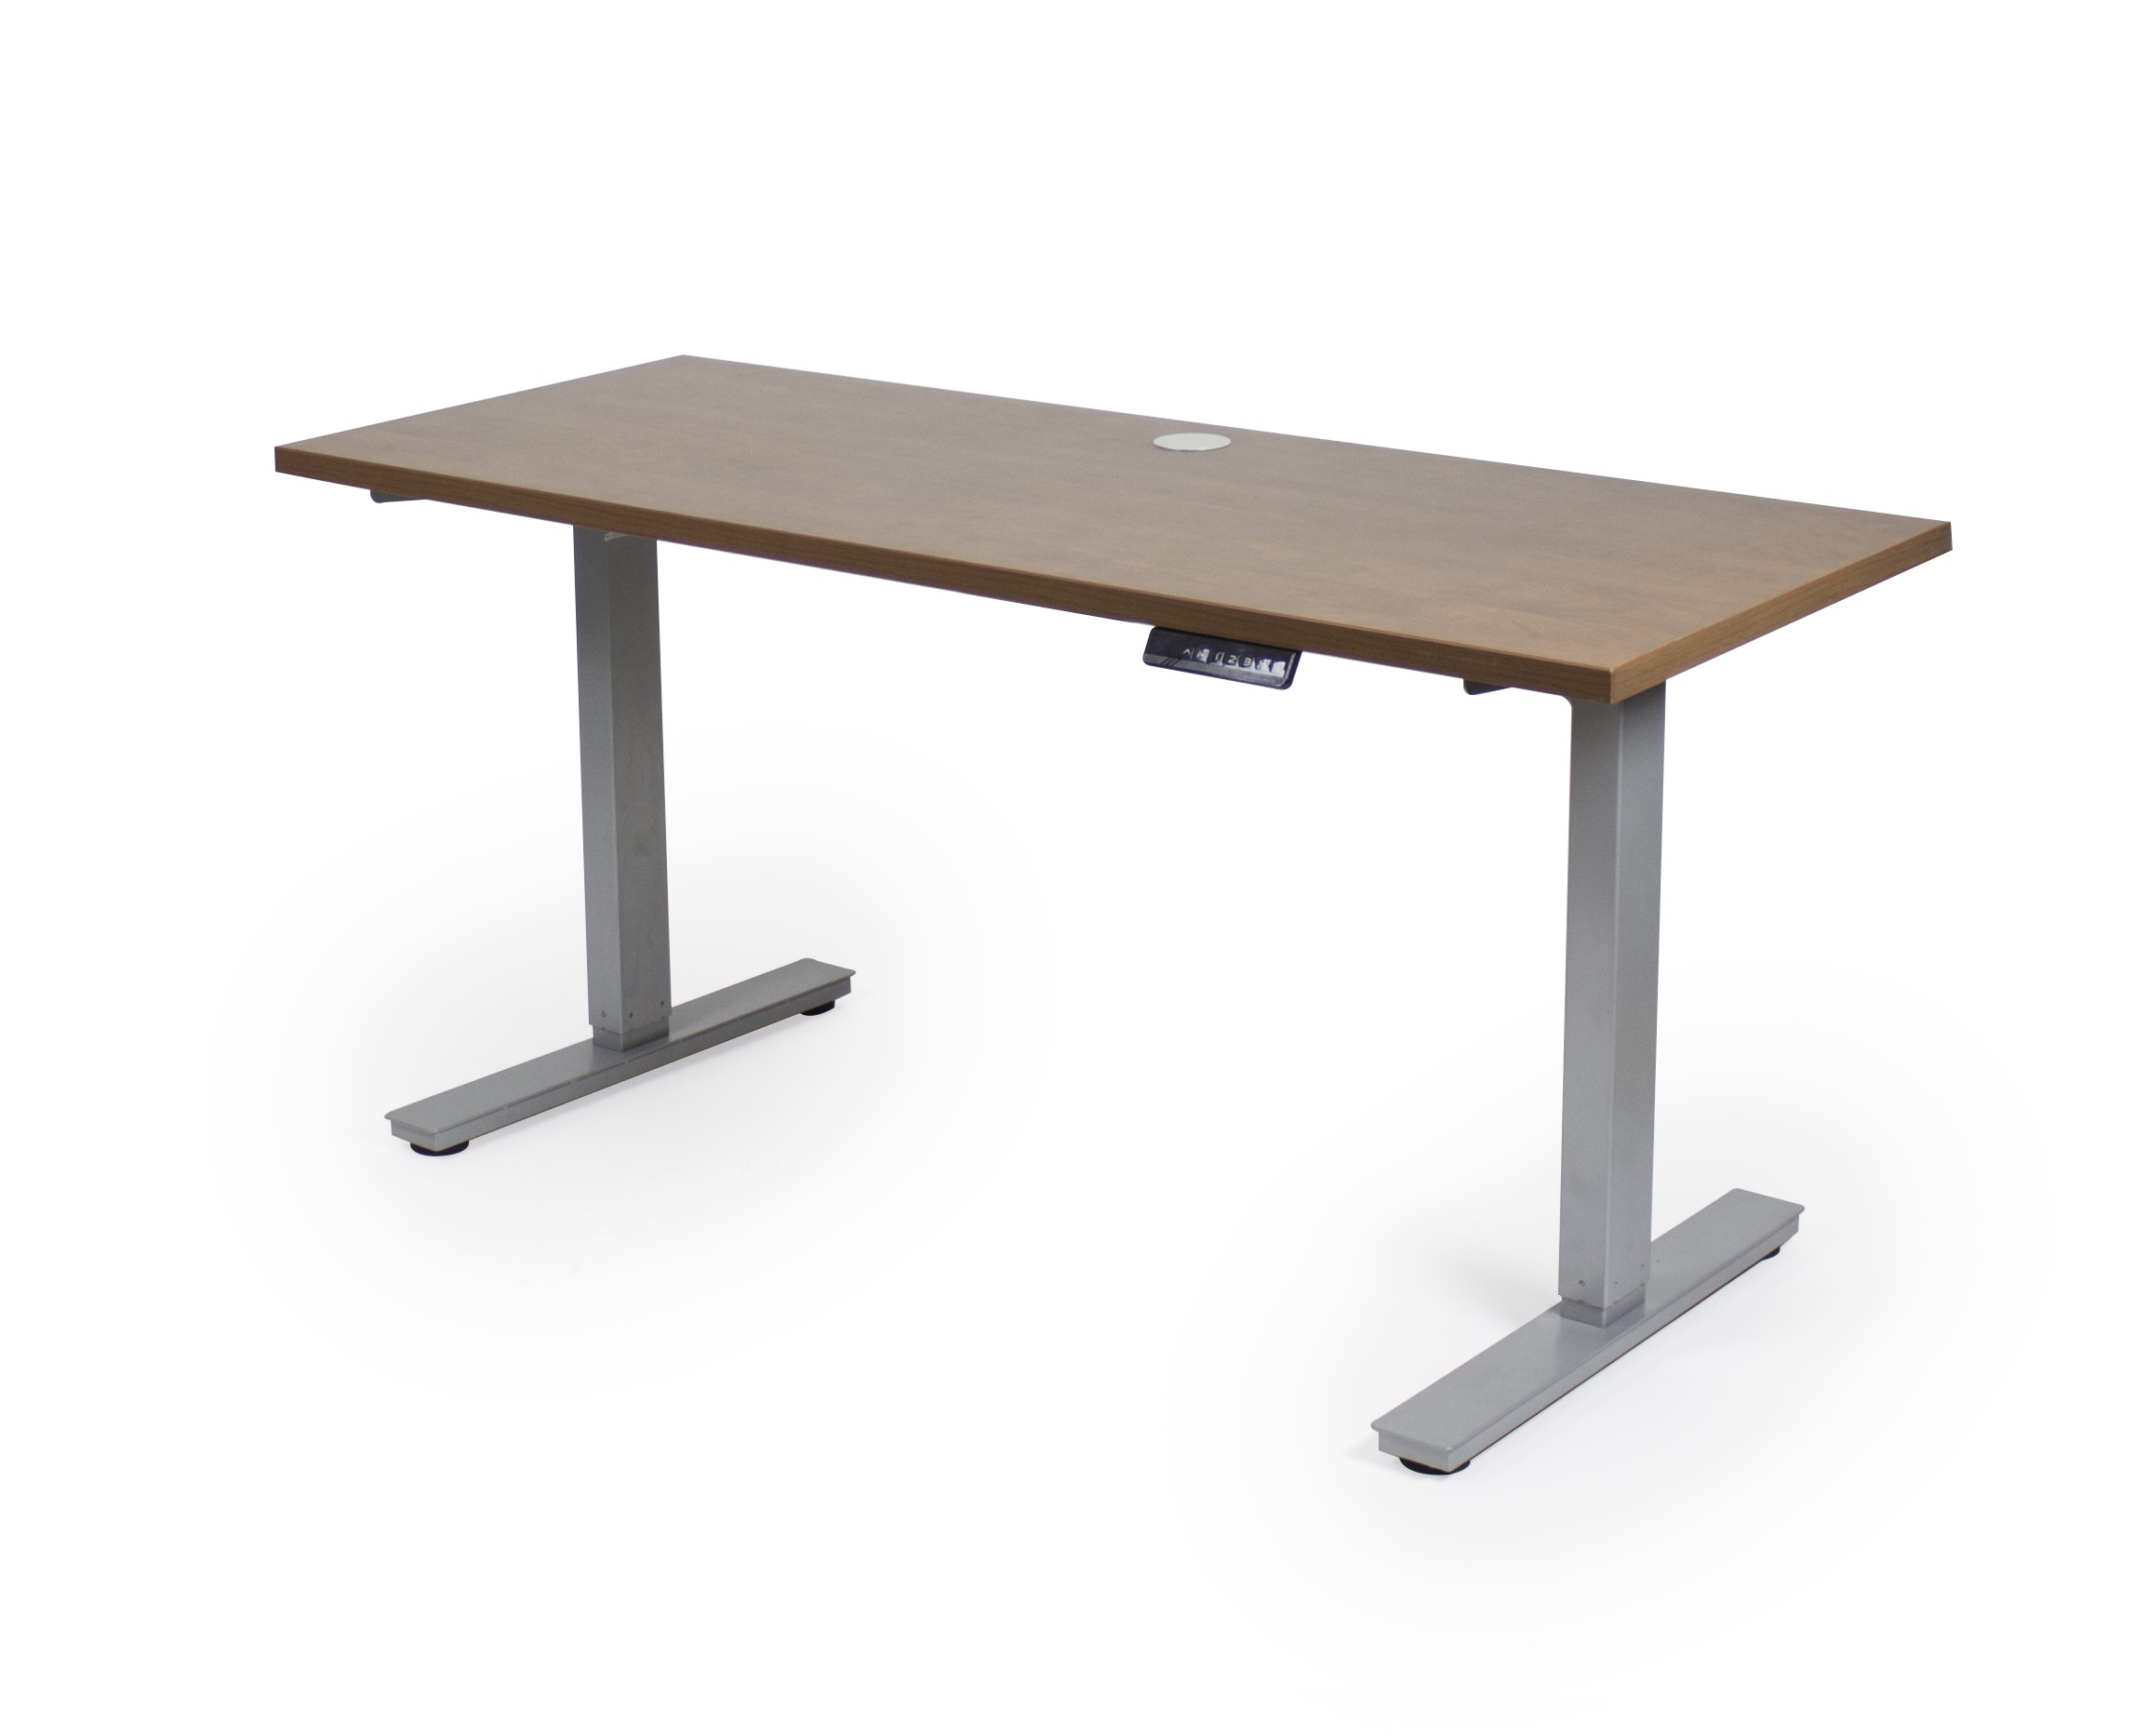 Basecamp Height Adjustable Table Office Furniture